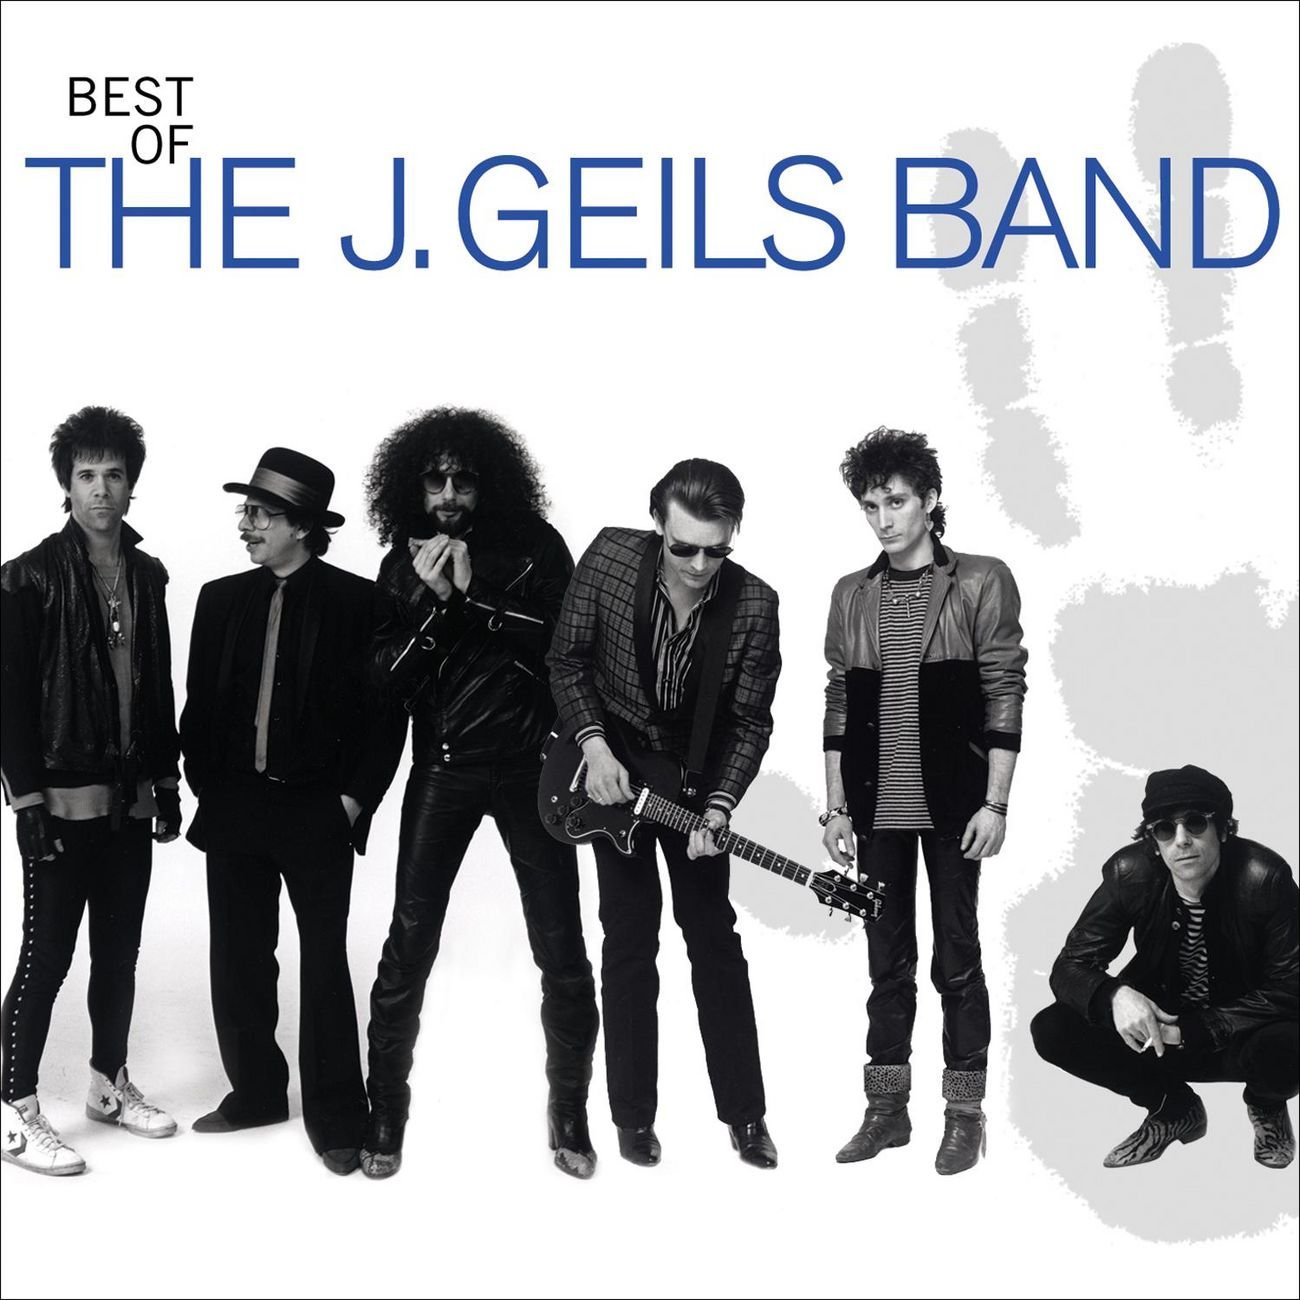 J. Geils Band - Best Of The J. Geils Band - Amazon.com Music